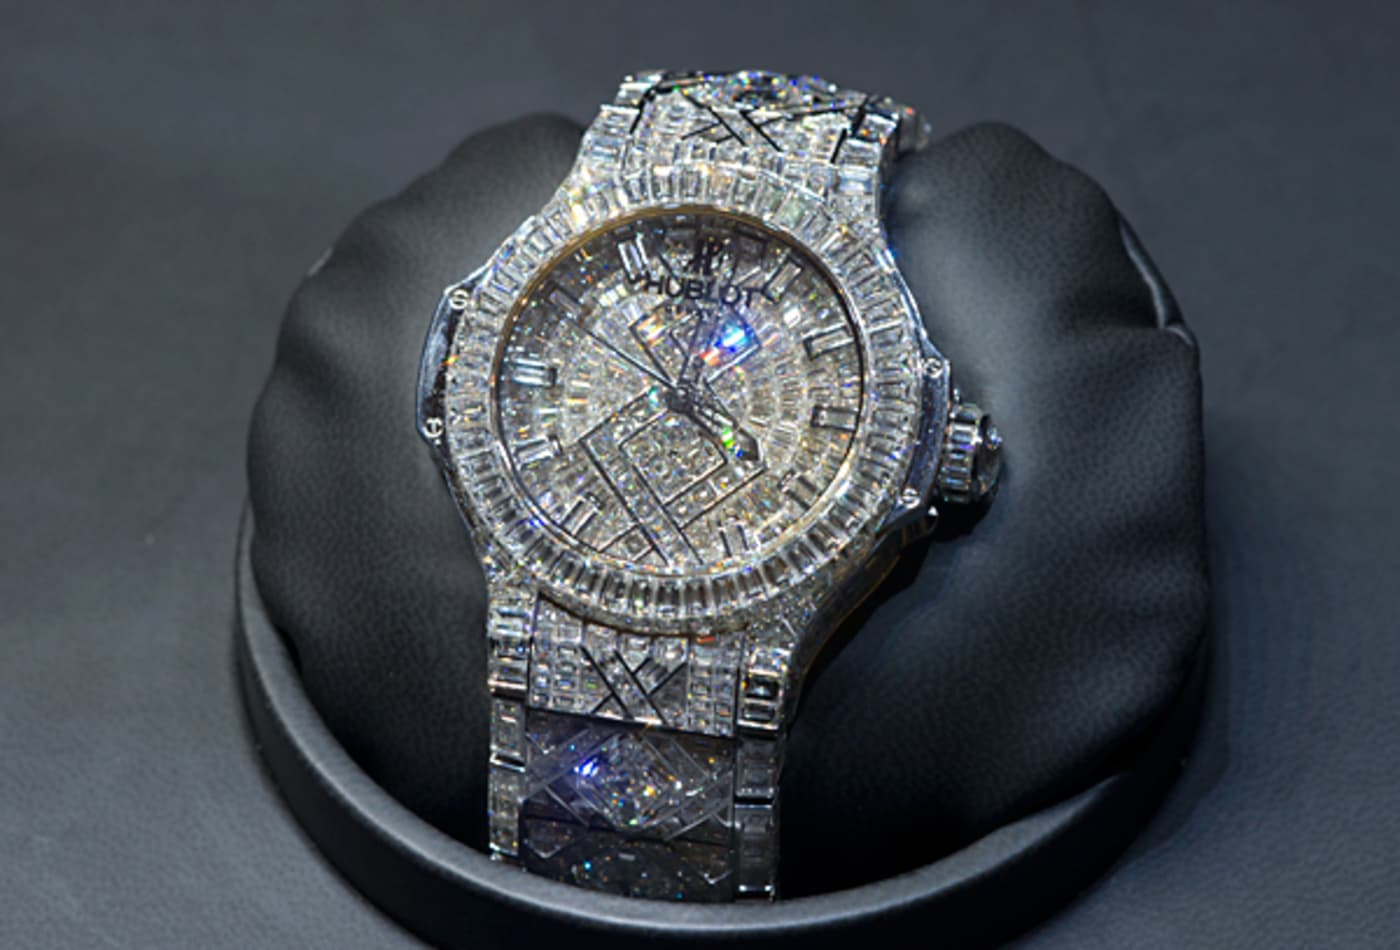 Hublot-Most Expensive watch.jpg